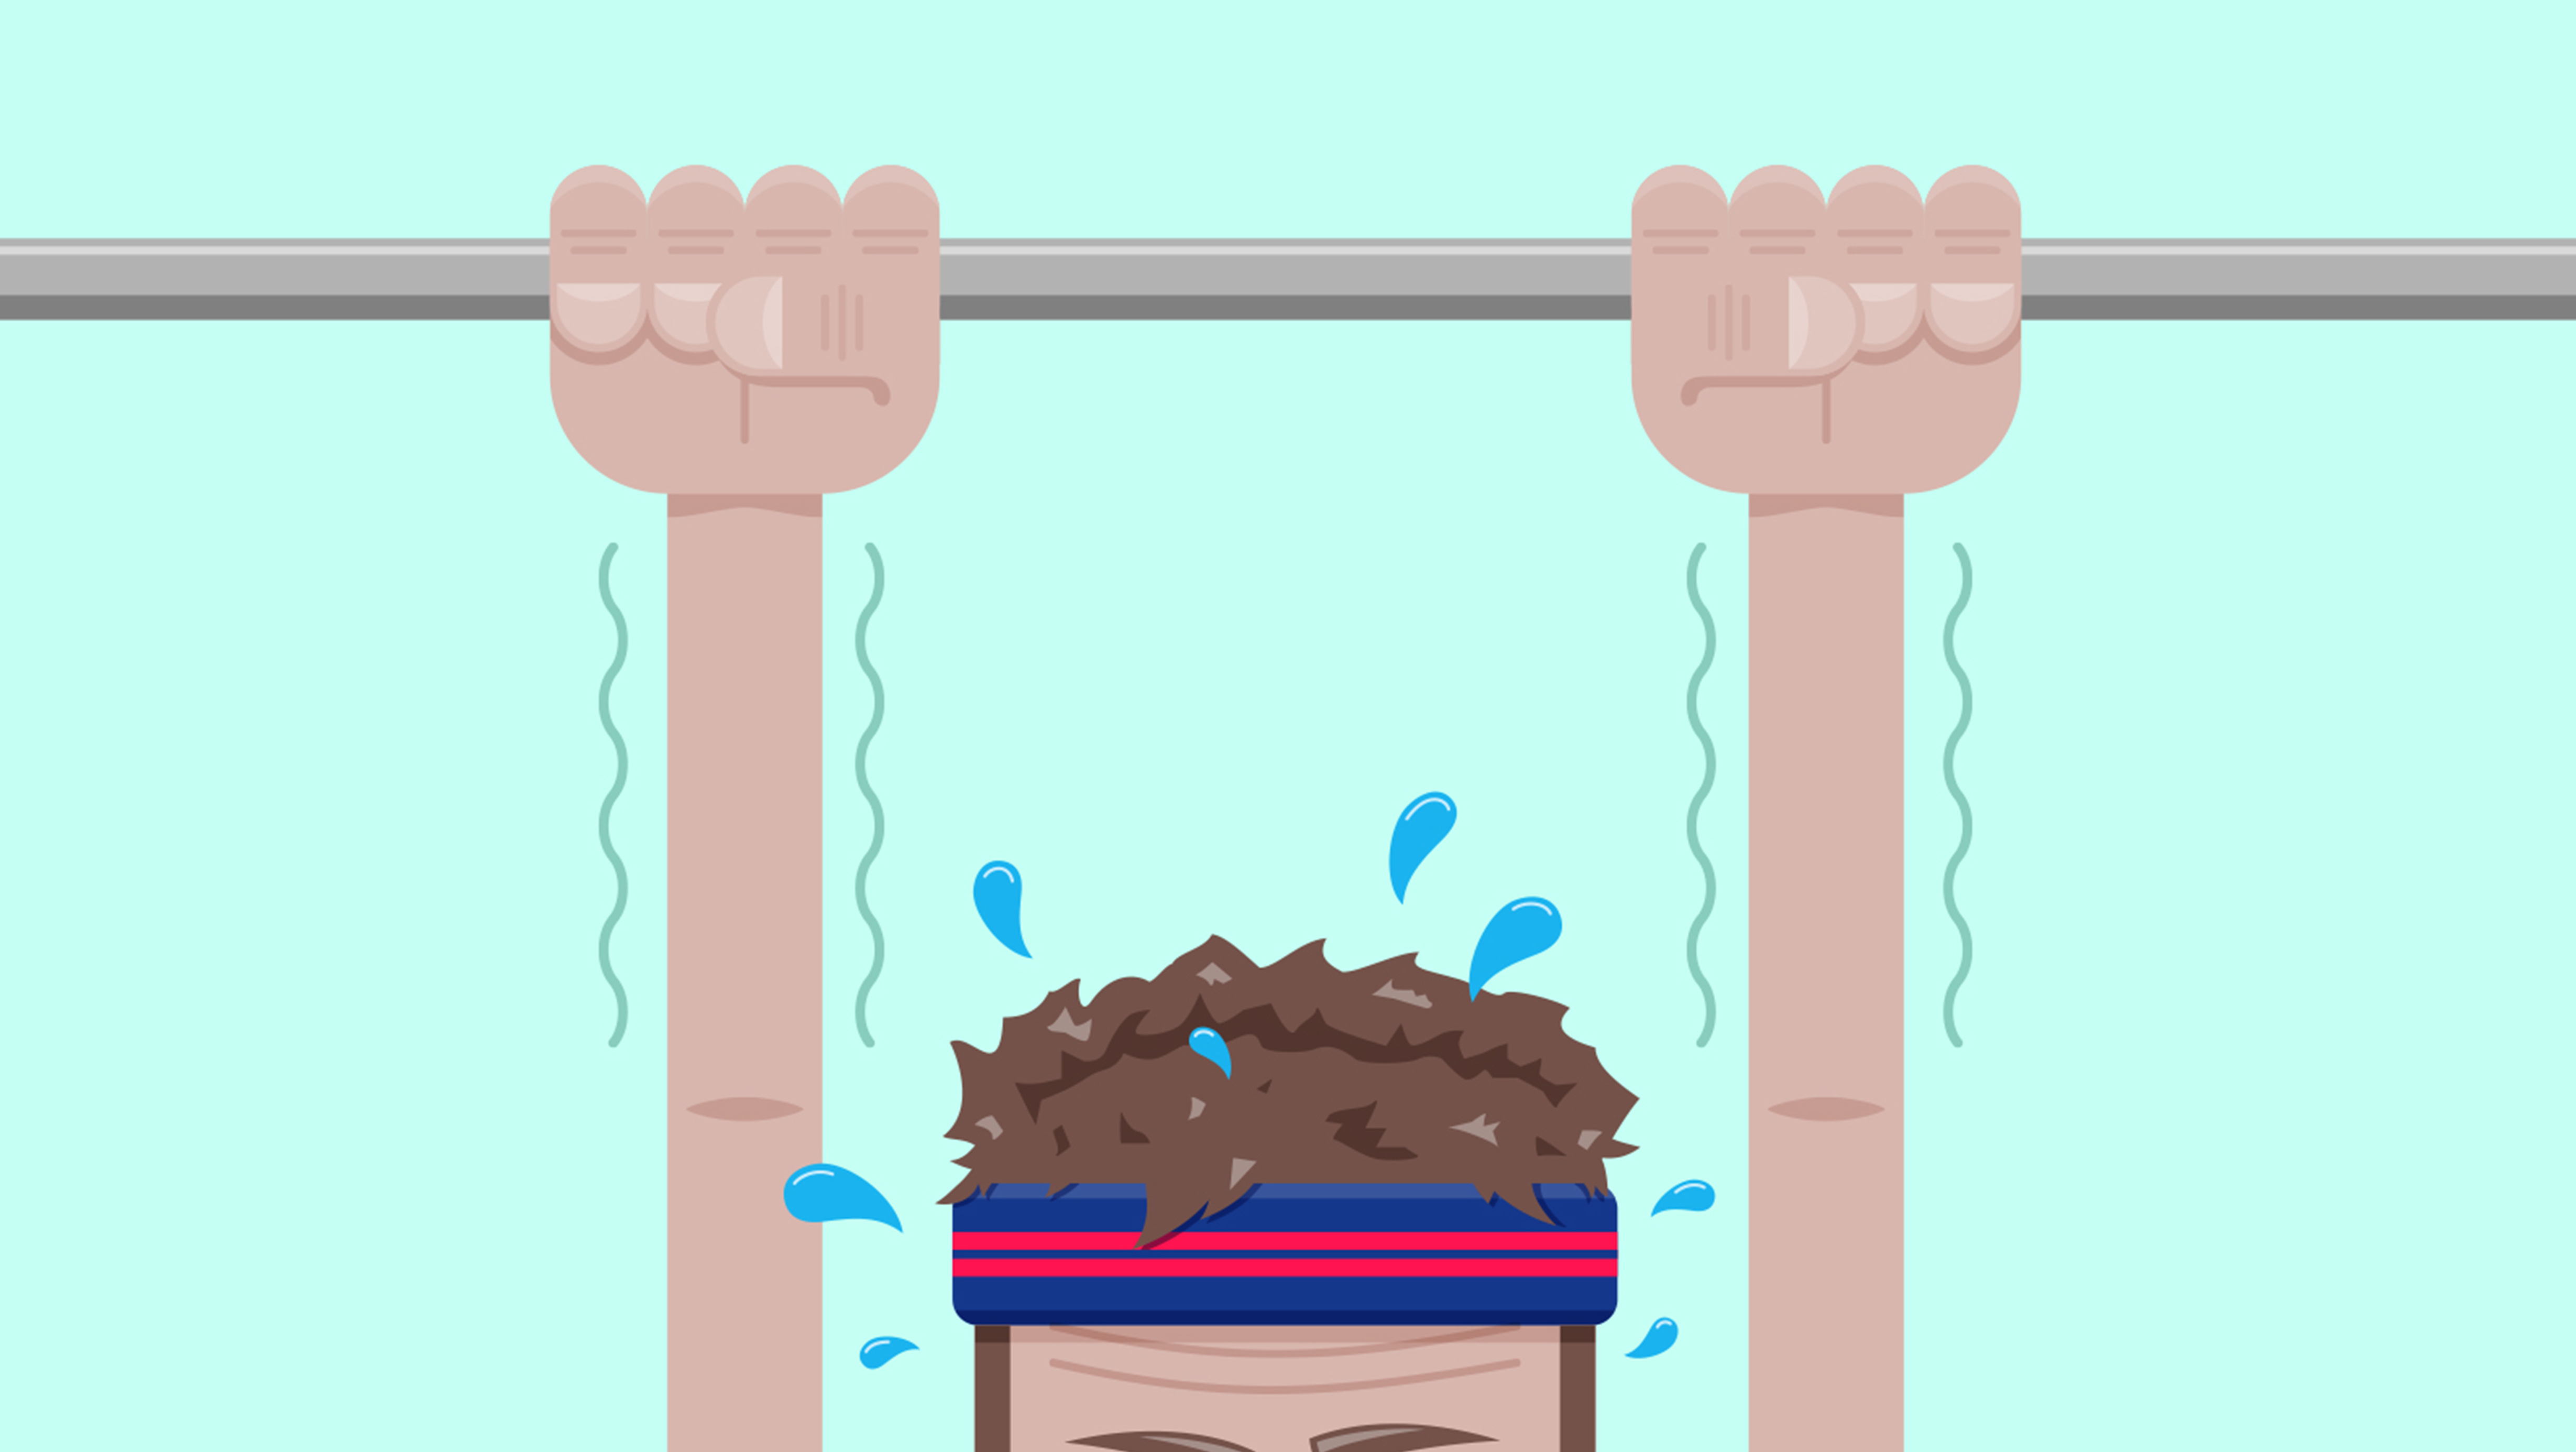 A man attempting a pull-up on a metal bar. His arms are shaking and he's sweating profusely.